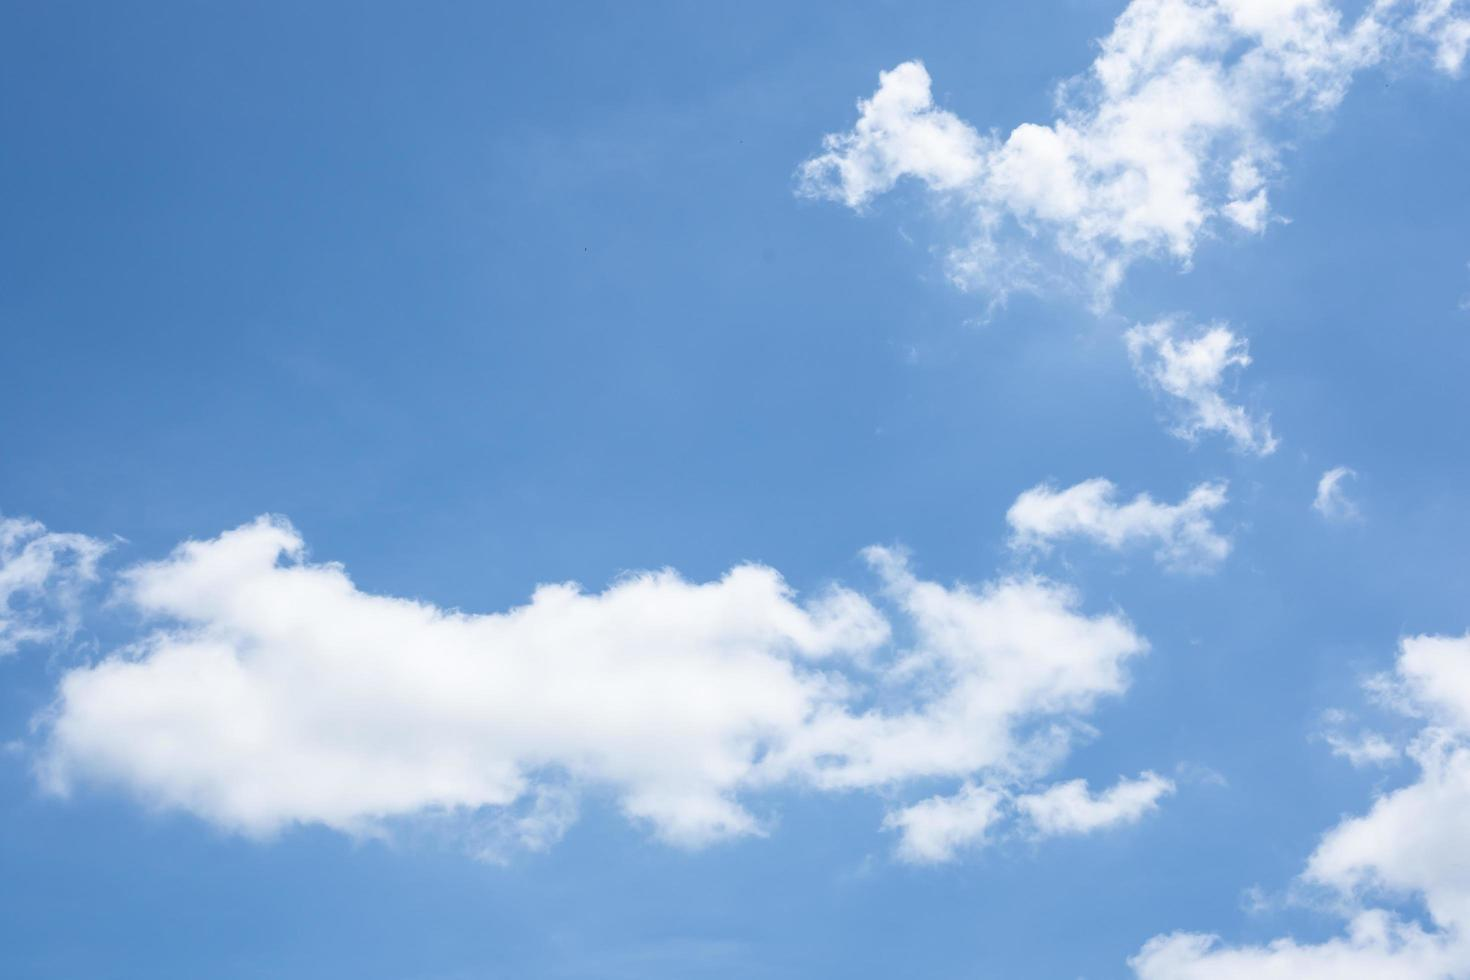 The sky and clouds photo